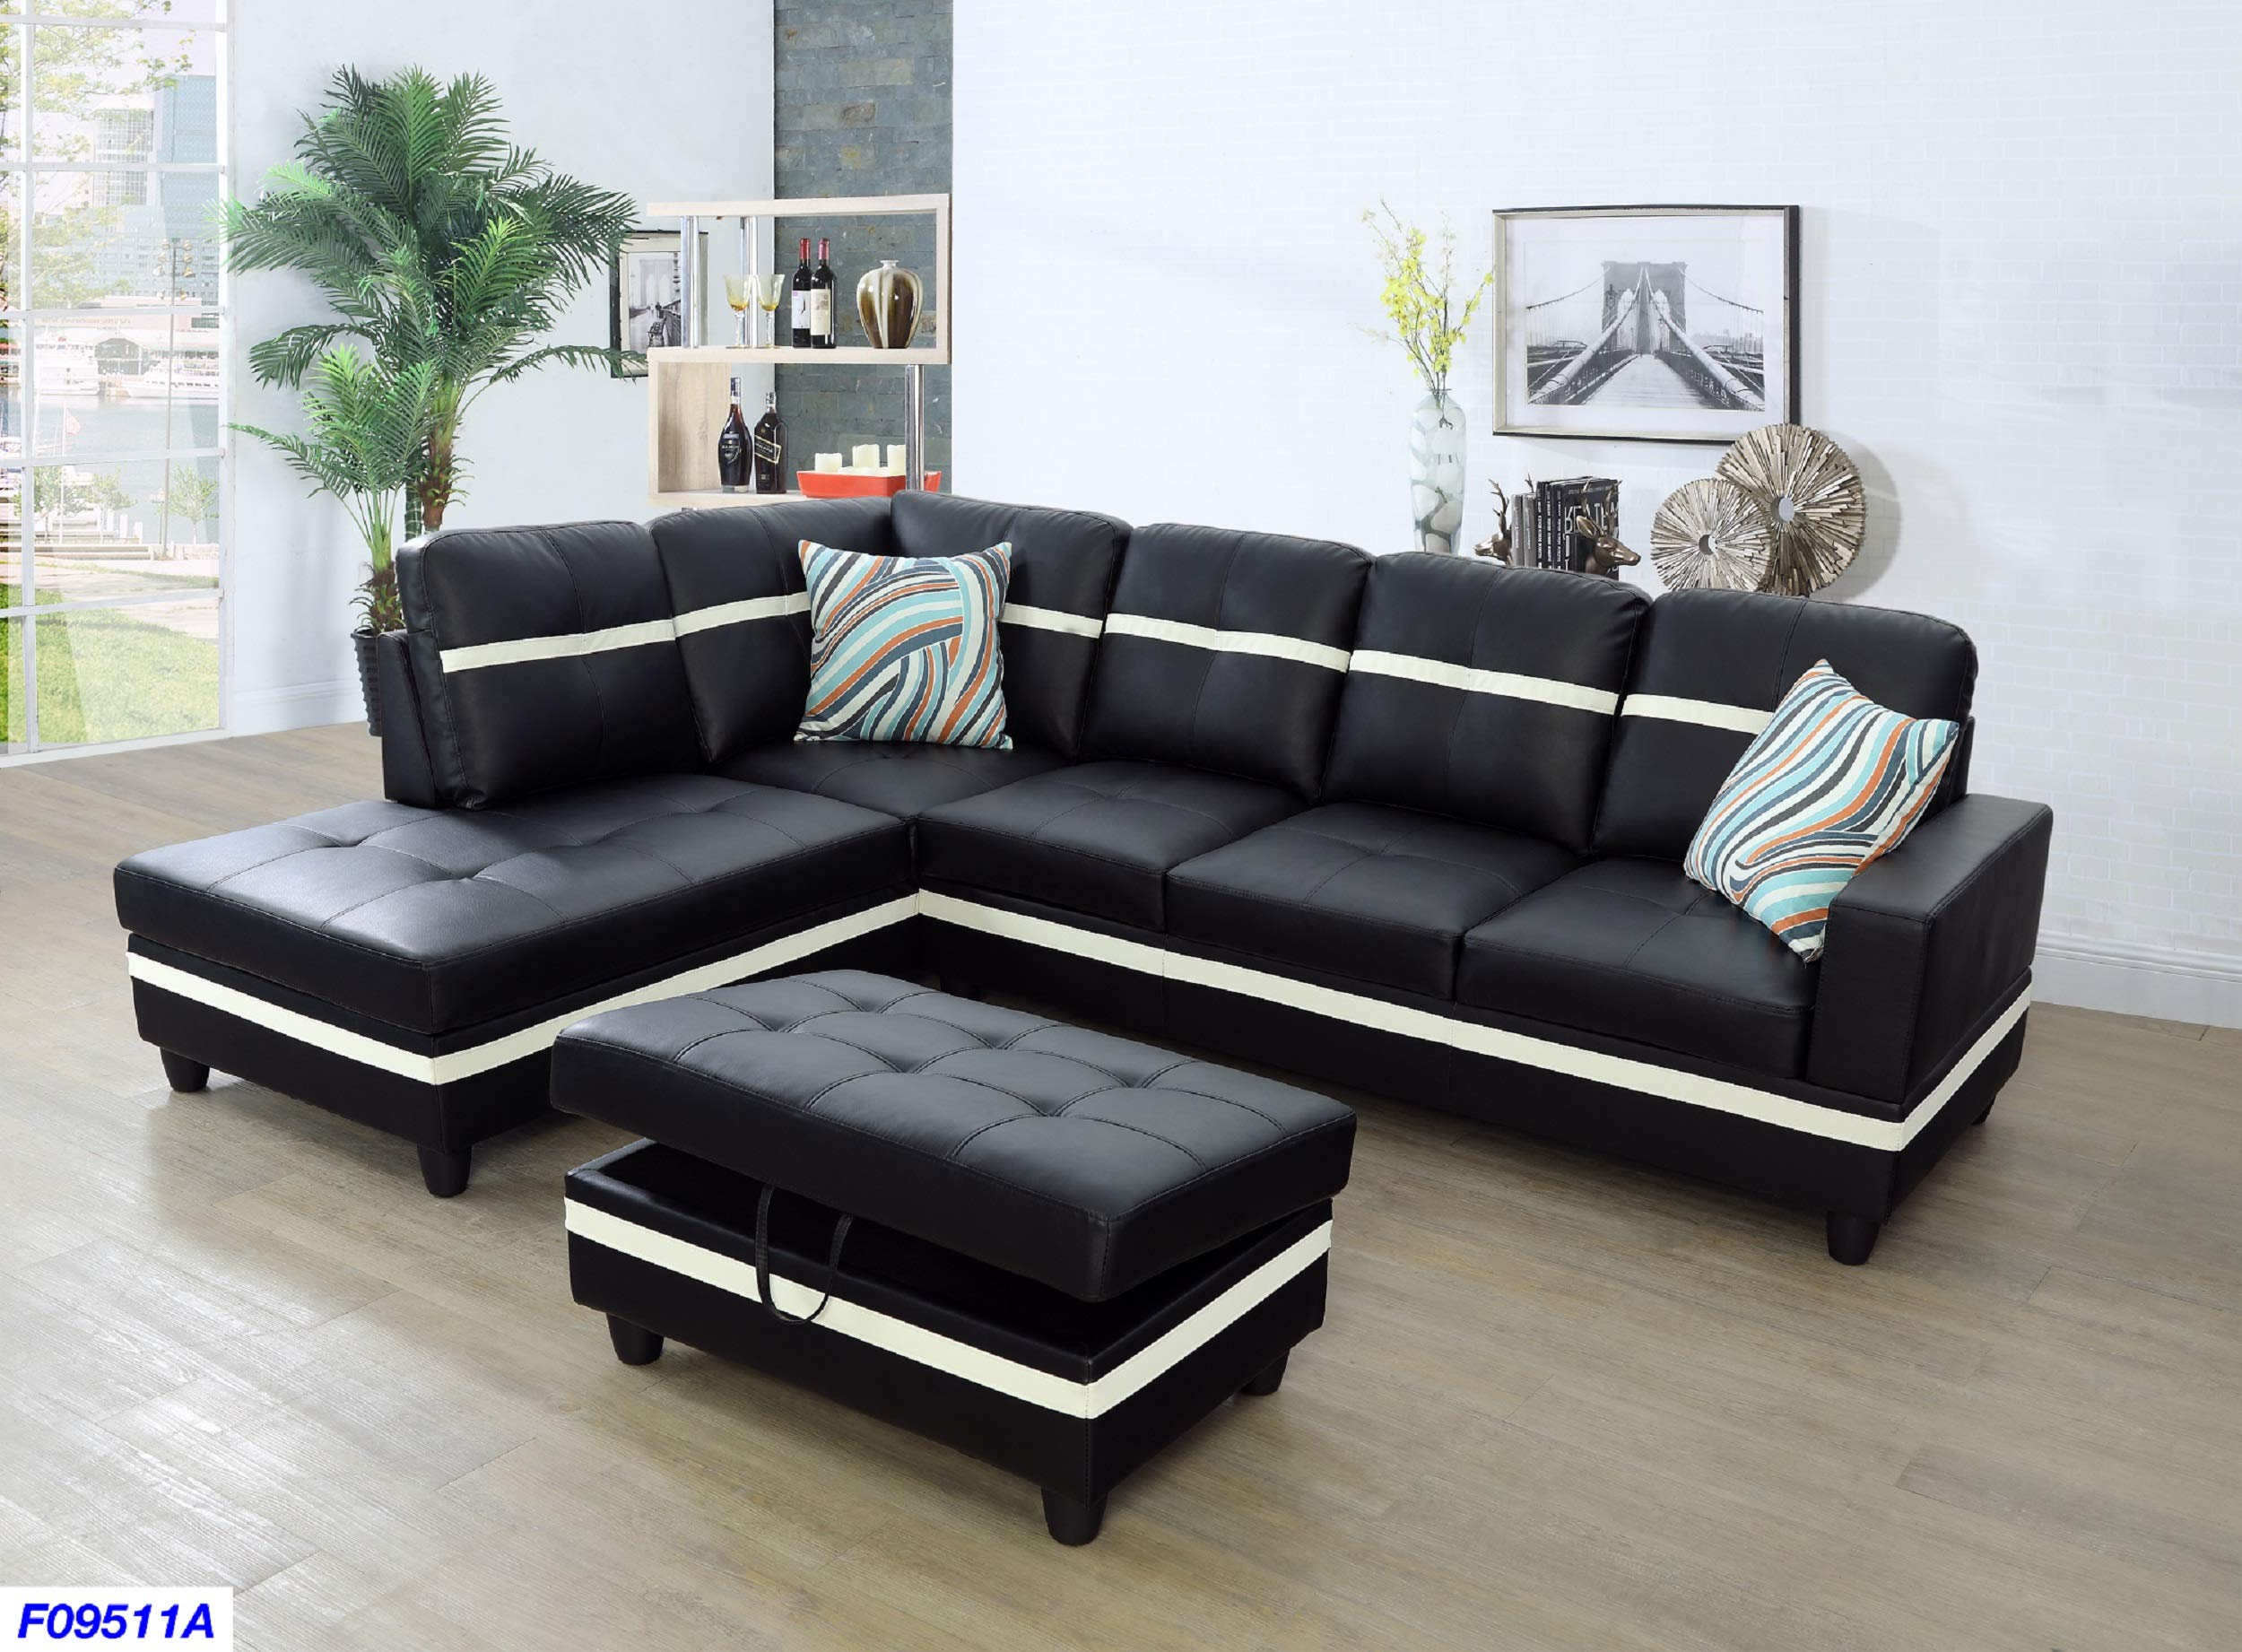 CHEAP Beverly Fine Funiture SHPO9511A-3PC Sectional Sofa Set, Black with  White Stripe - Reviews VIDEO - Special Discount Today